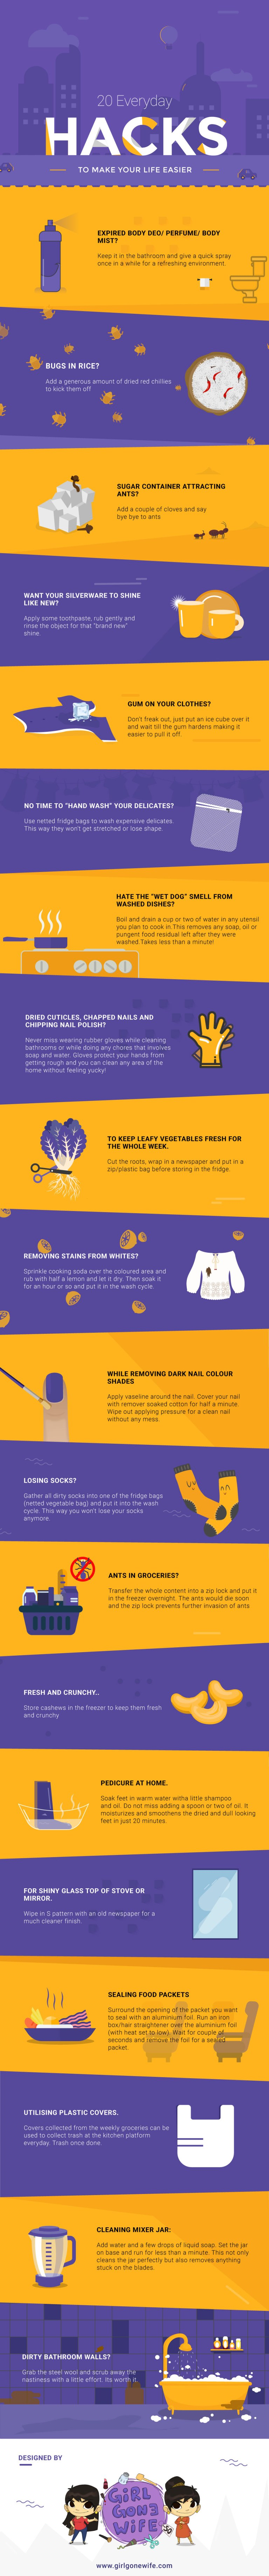 20 Life-Changing Hacks - Infographic